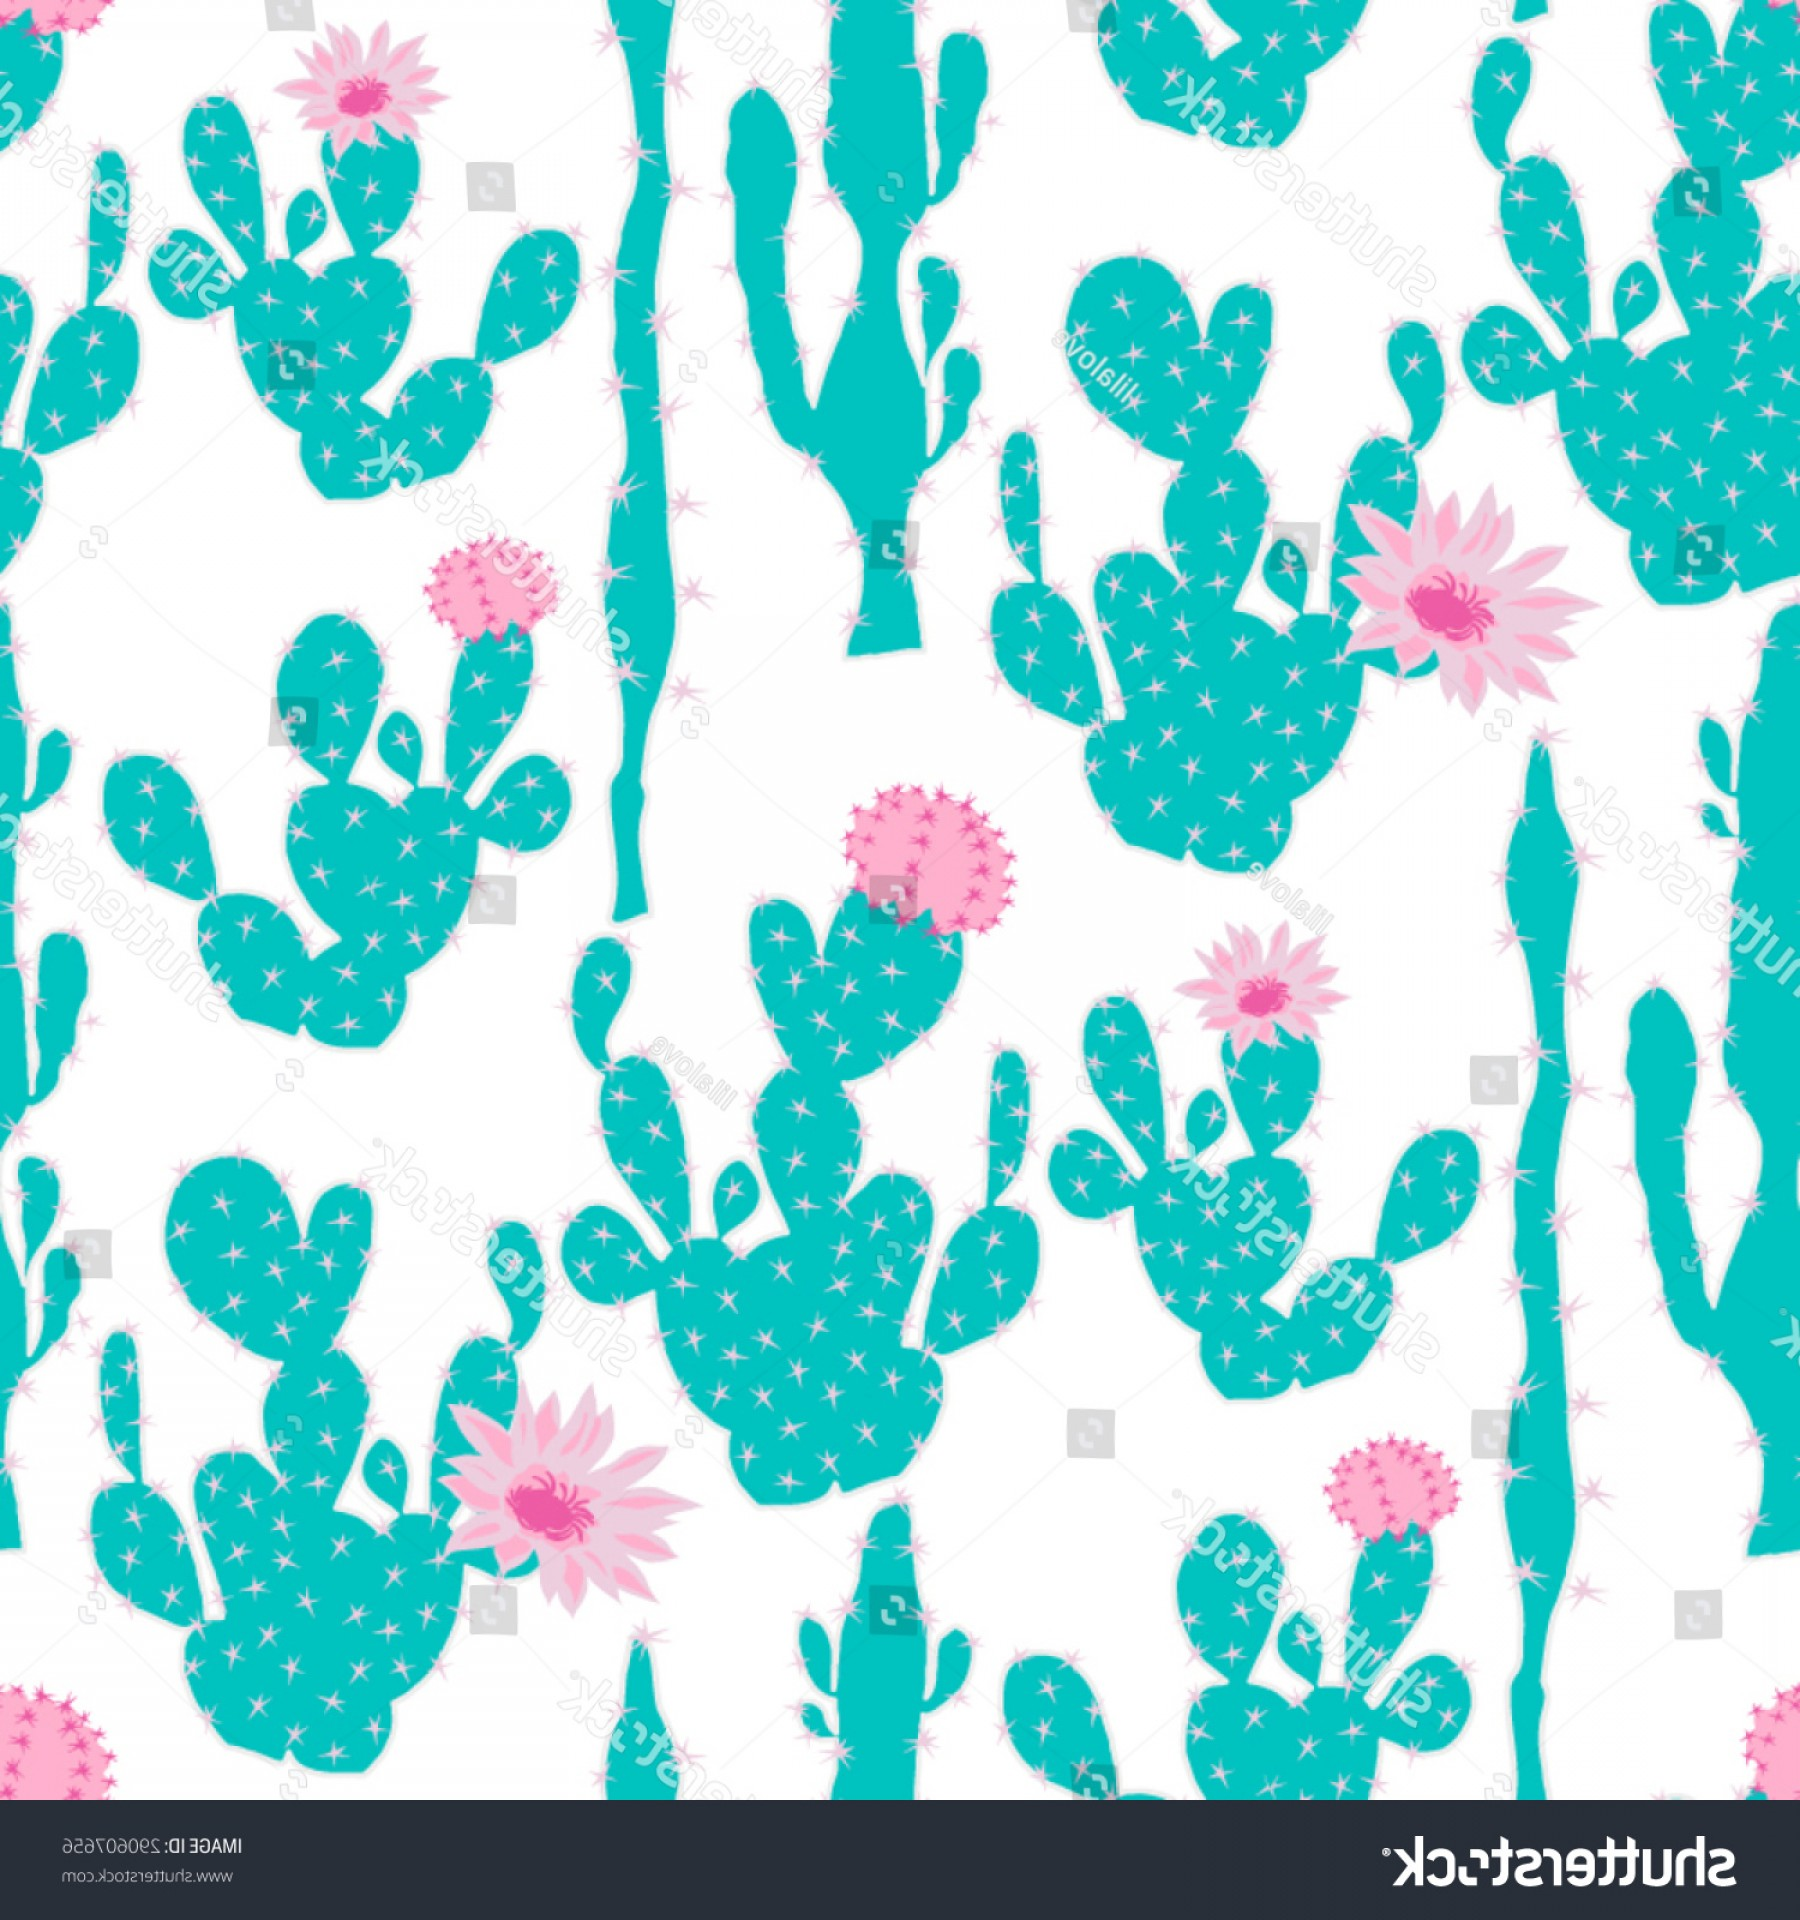 Cactus And Flower Vector: Seamless Cute Cactus Flower Vector Pattern